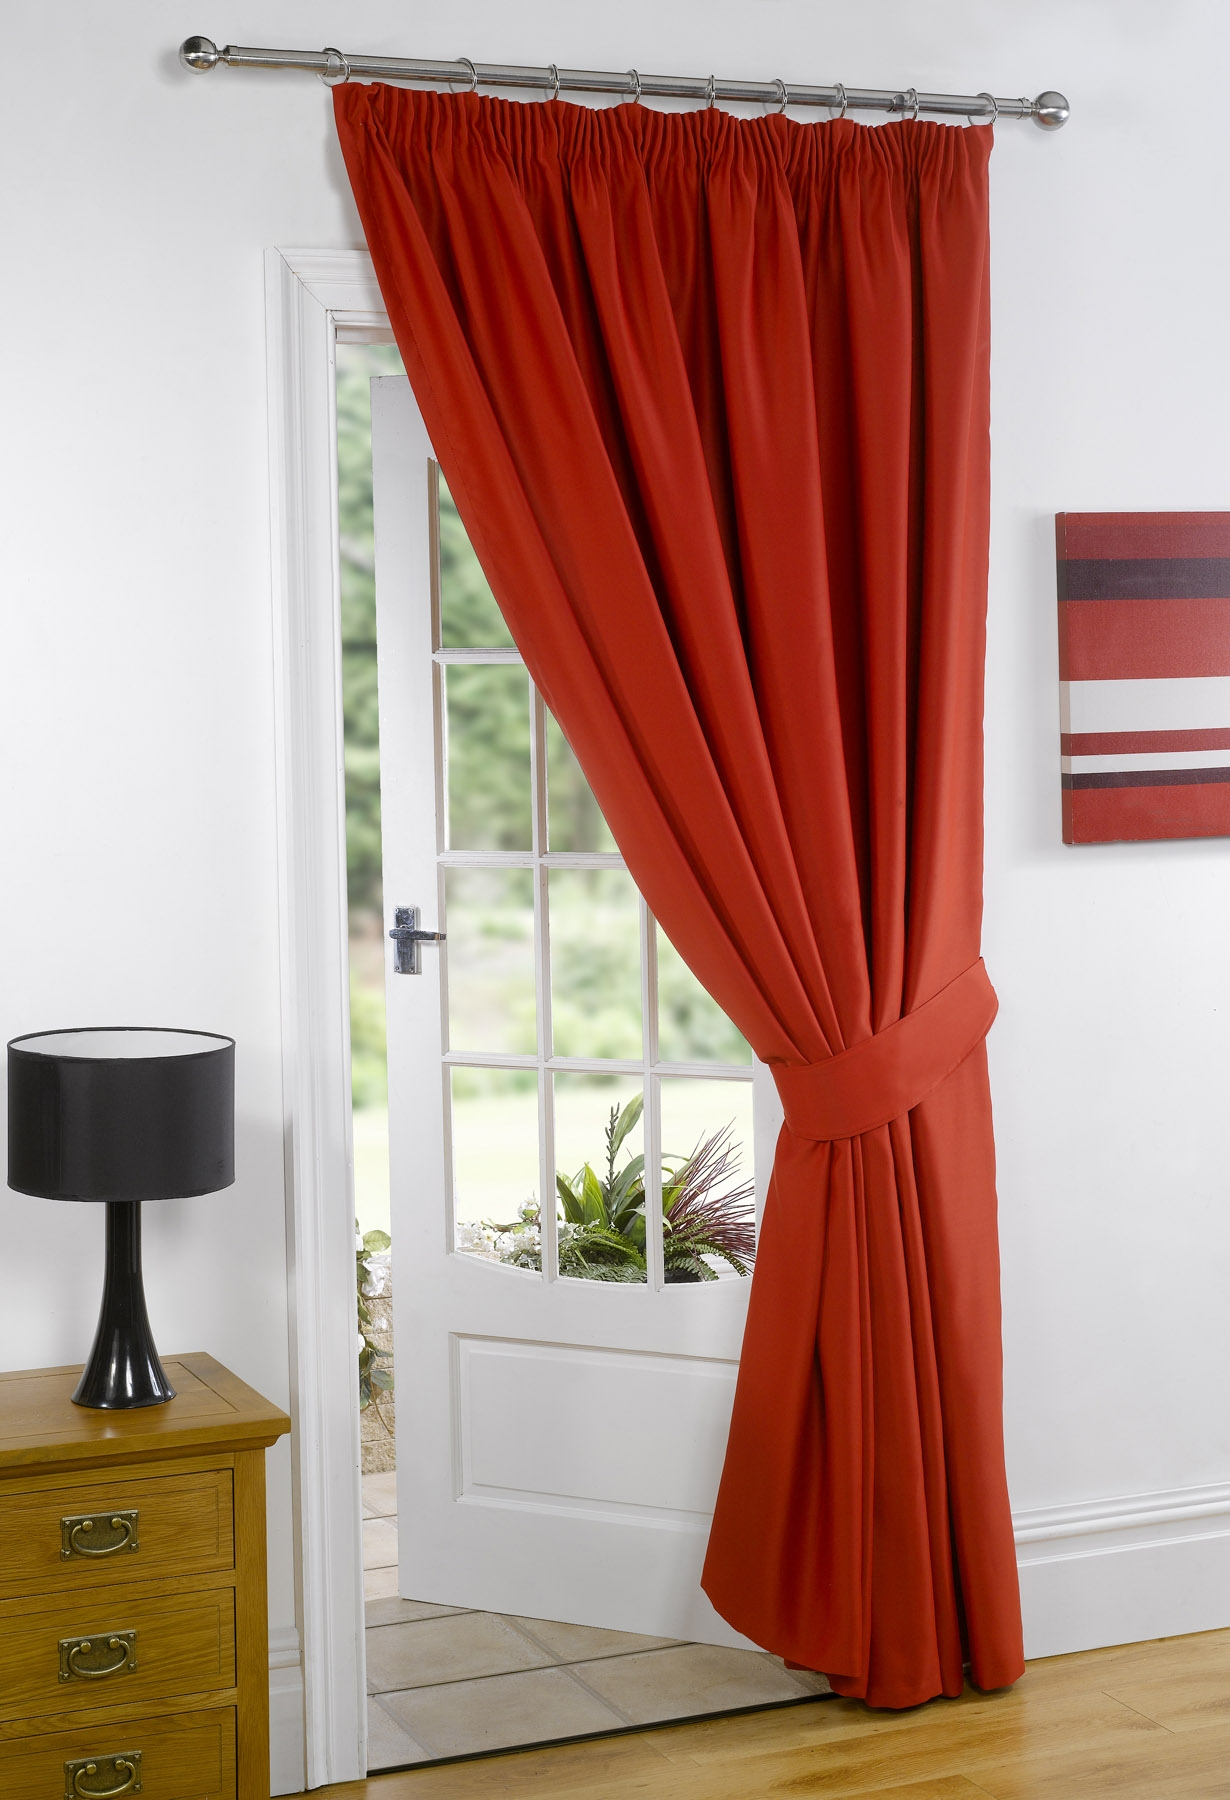 Blackout Curtains 90 X 54 Ready Made Curtains 90 X 84 Curtain Menzilperde Net